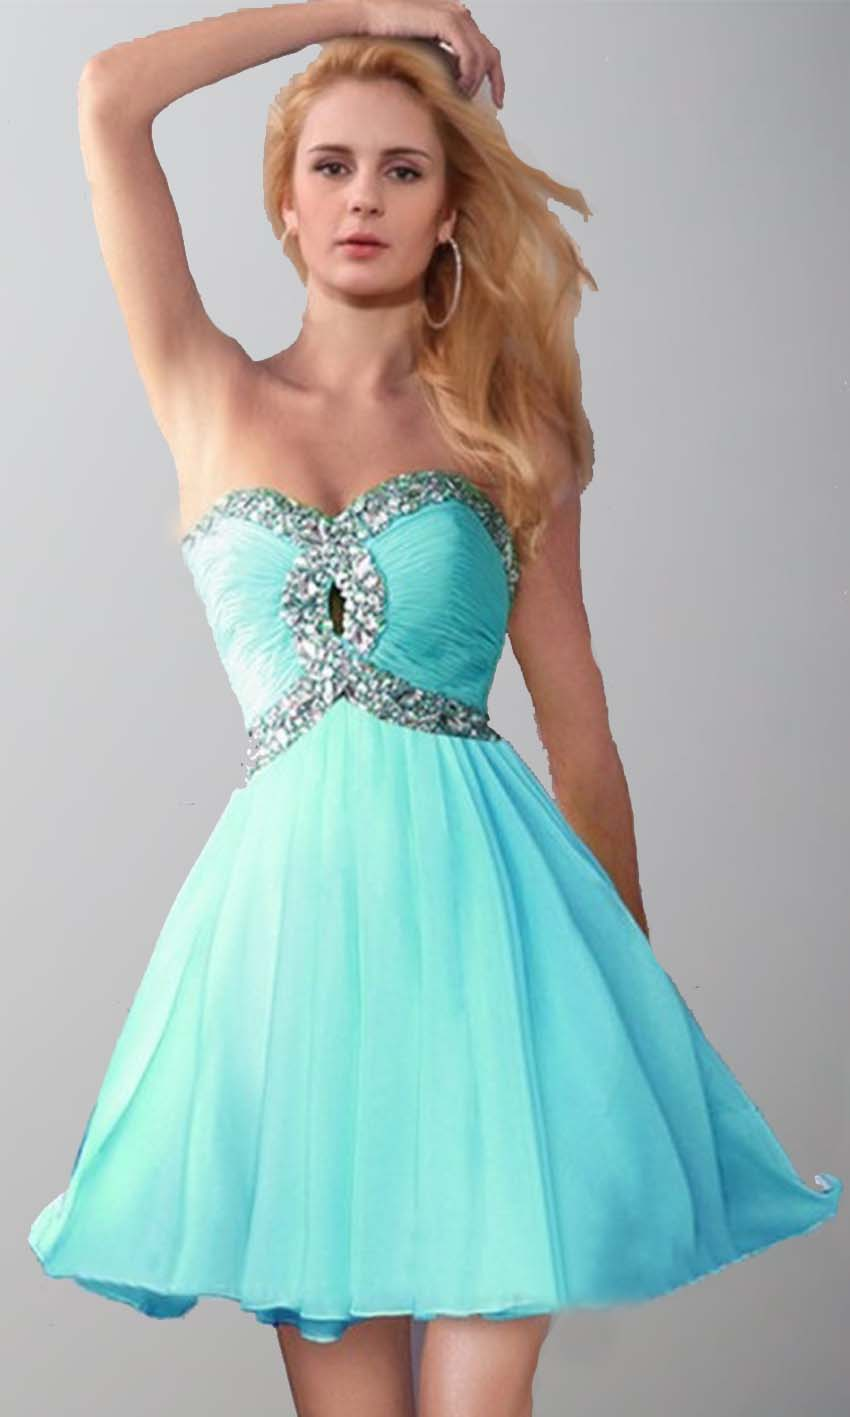 Keyhole Bust Teal Knee Length Sequin Prom Dresses KSP399 [KSP399 ...